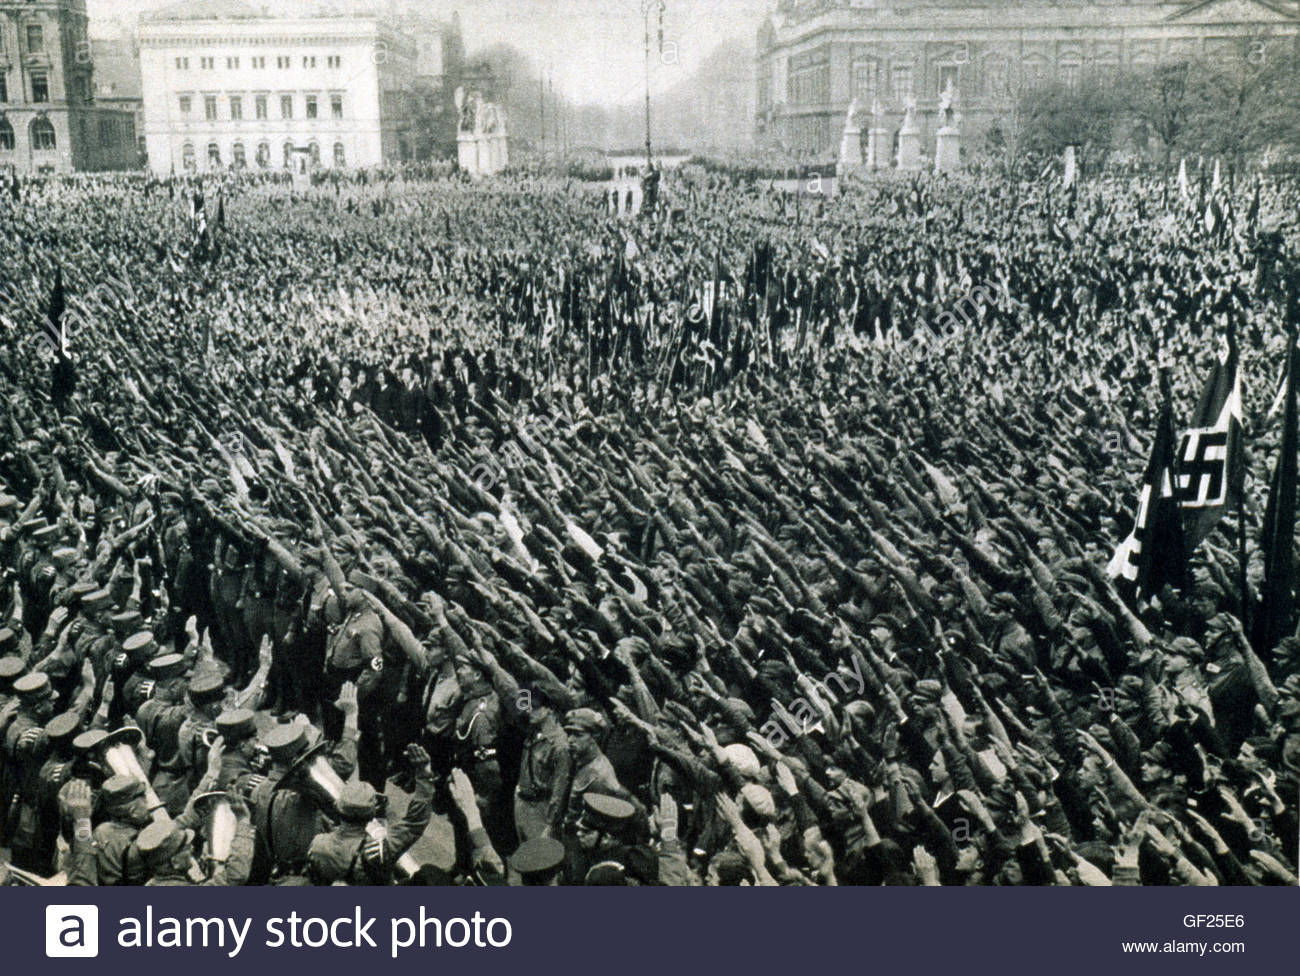 Massive Rally Of The Hitler Youth Raise Their Arms In The Nazi Salute From The Hitler Book - Stock Image